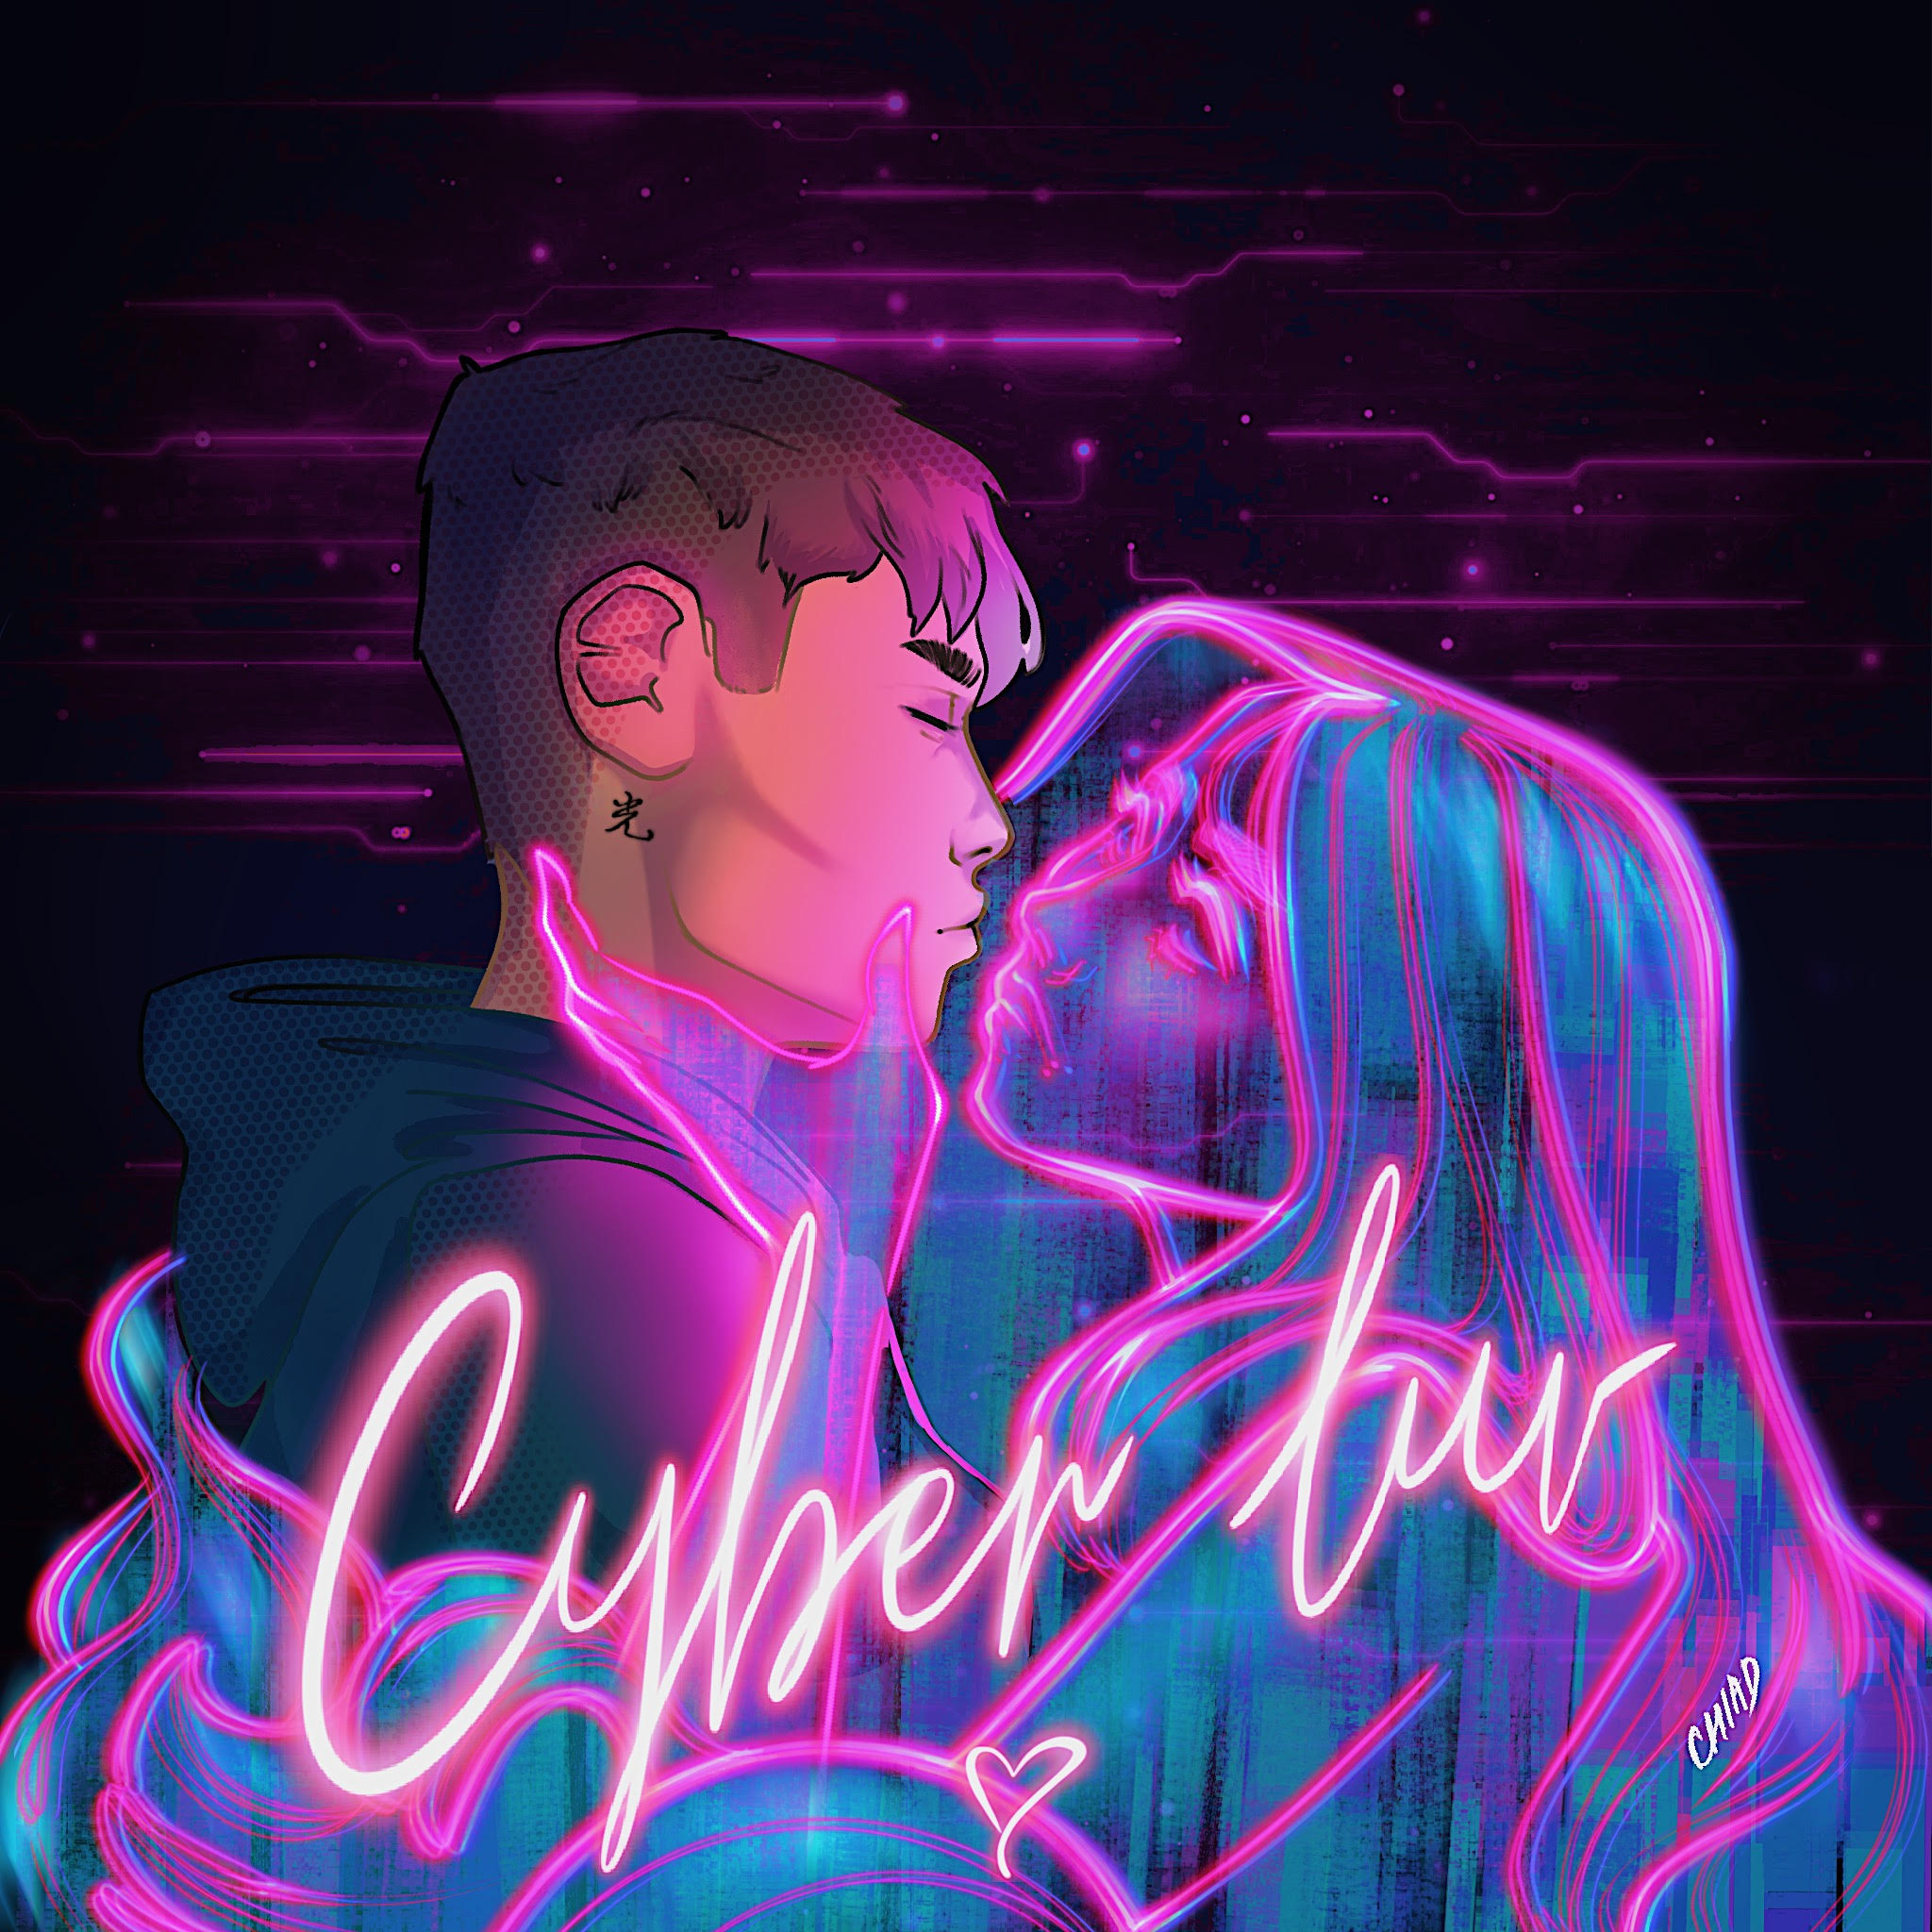 Connor Angels Releases New Single Cyberluv